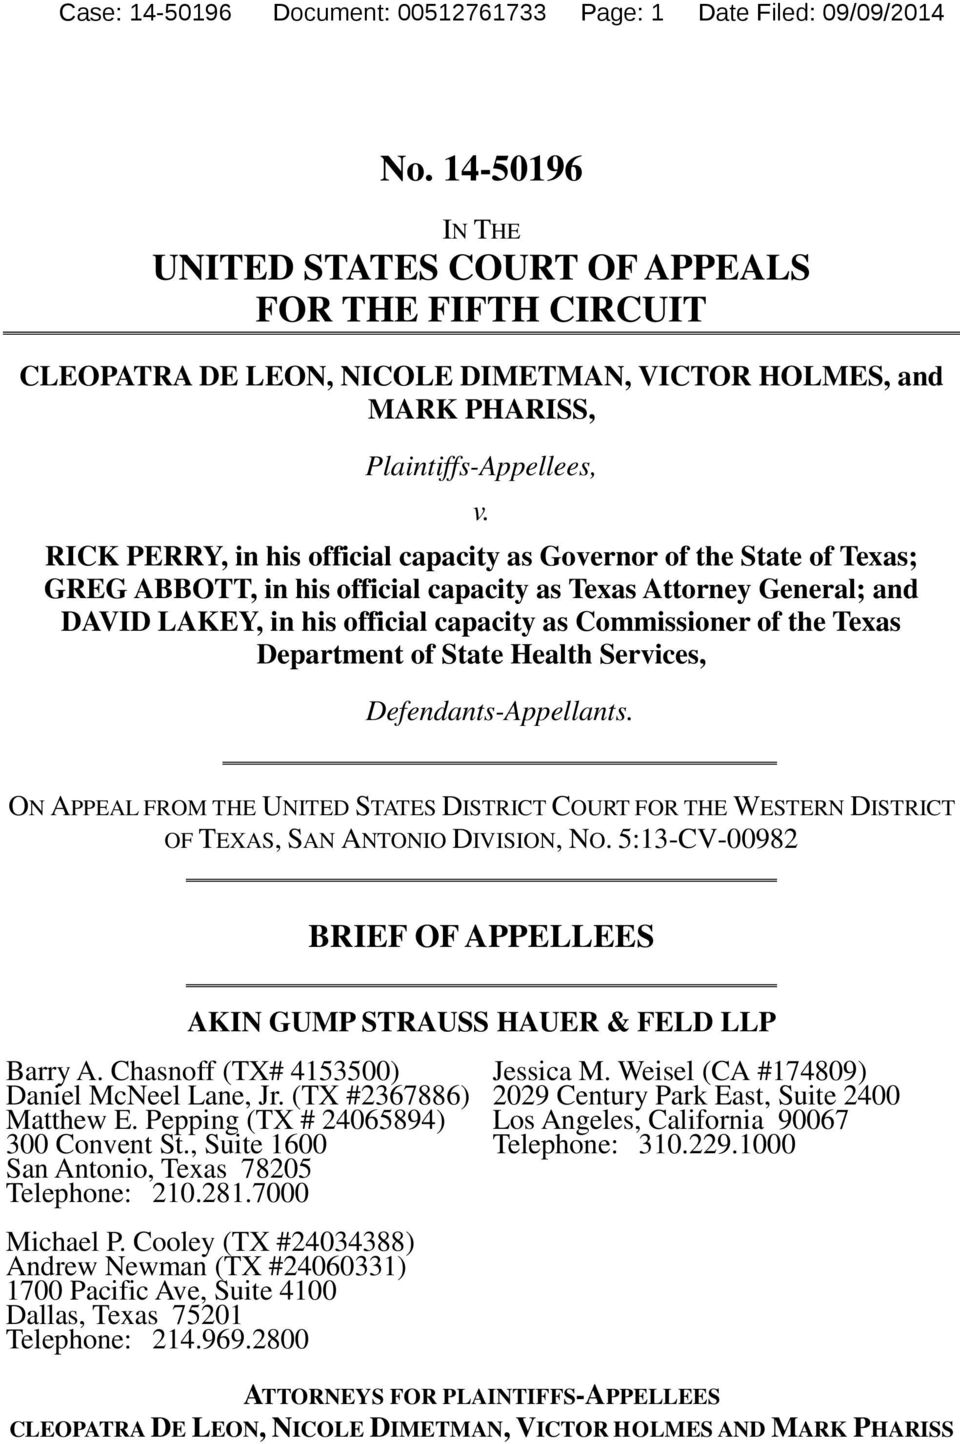 RICK PERRY, in his official capacity as Governor of the State of Texas; GREG ABBOTT, in his official capacity as Texas Attorney General; and DAVID LAKEY, in his official capacity as Commissioner of